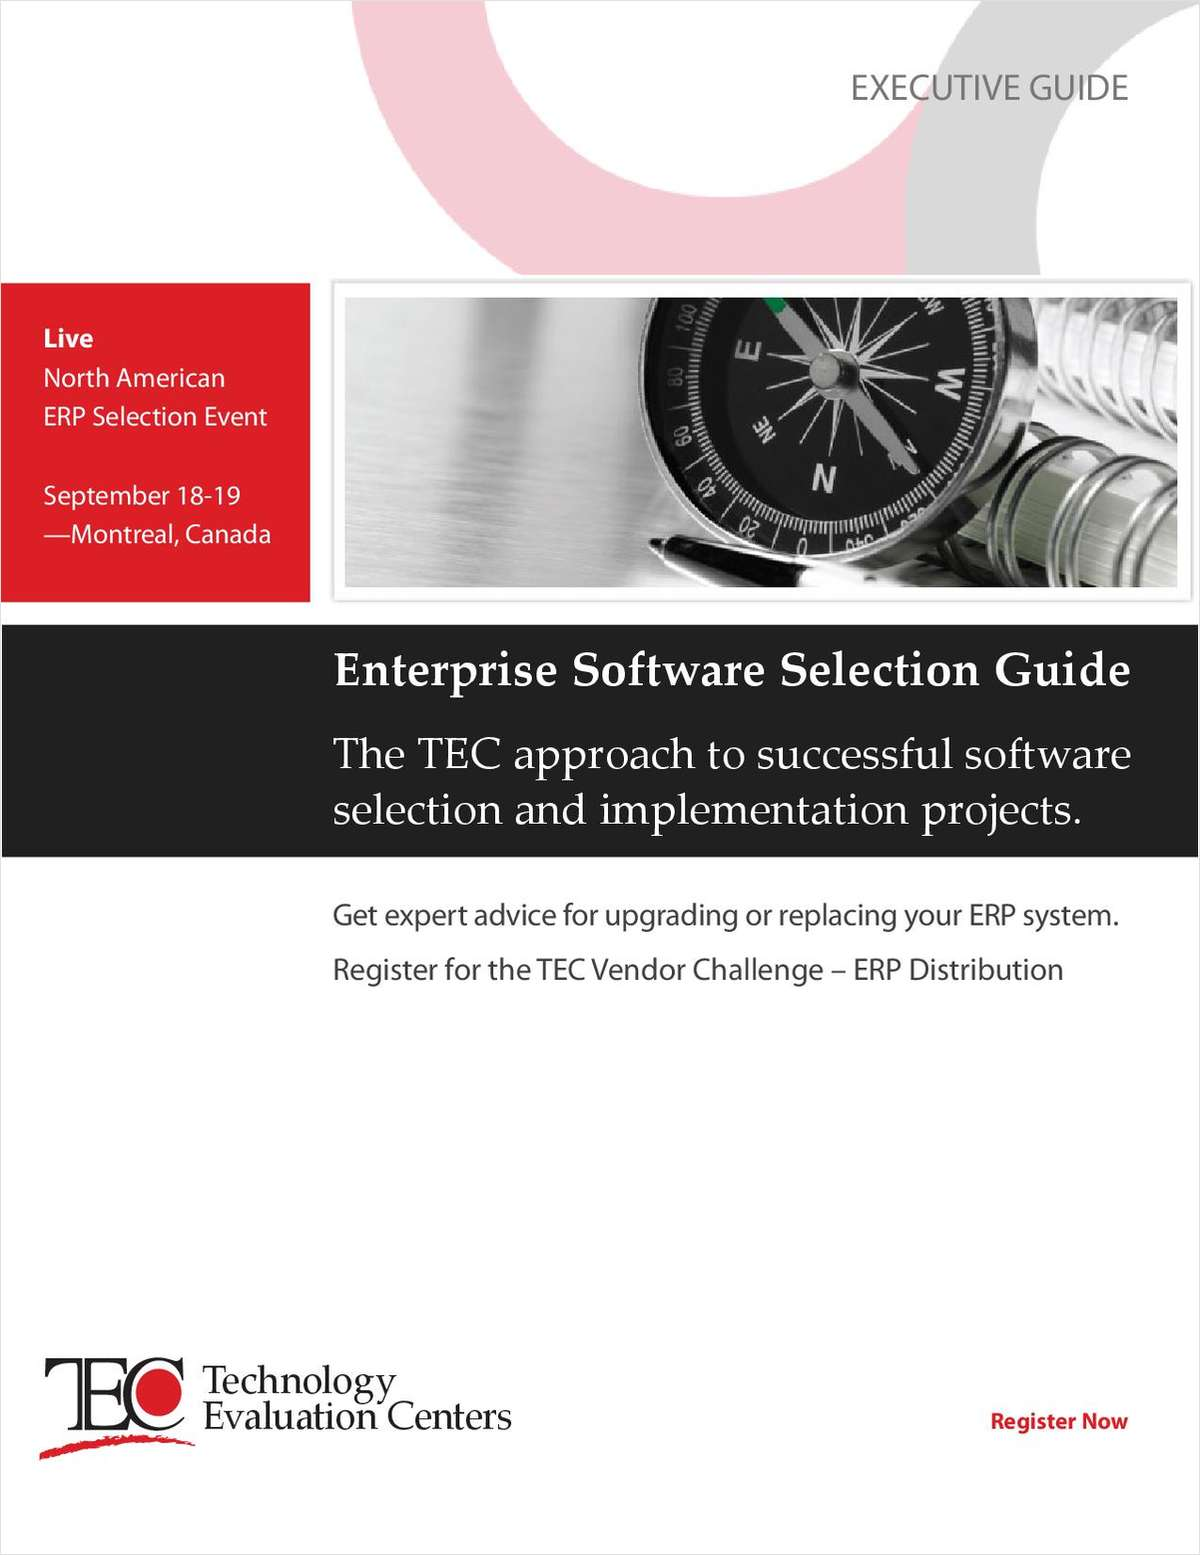 Executive Guide to Successful Software Selection